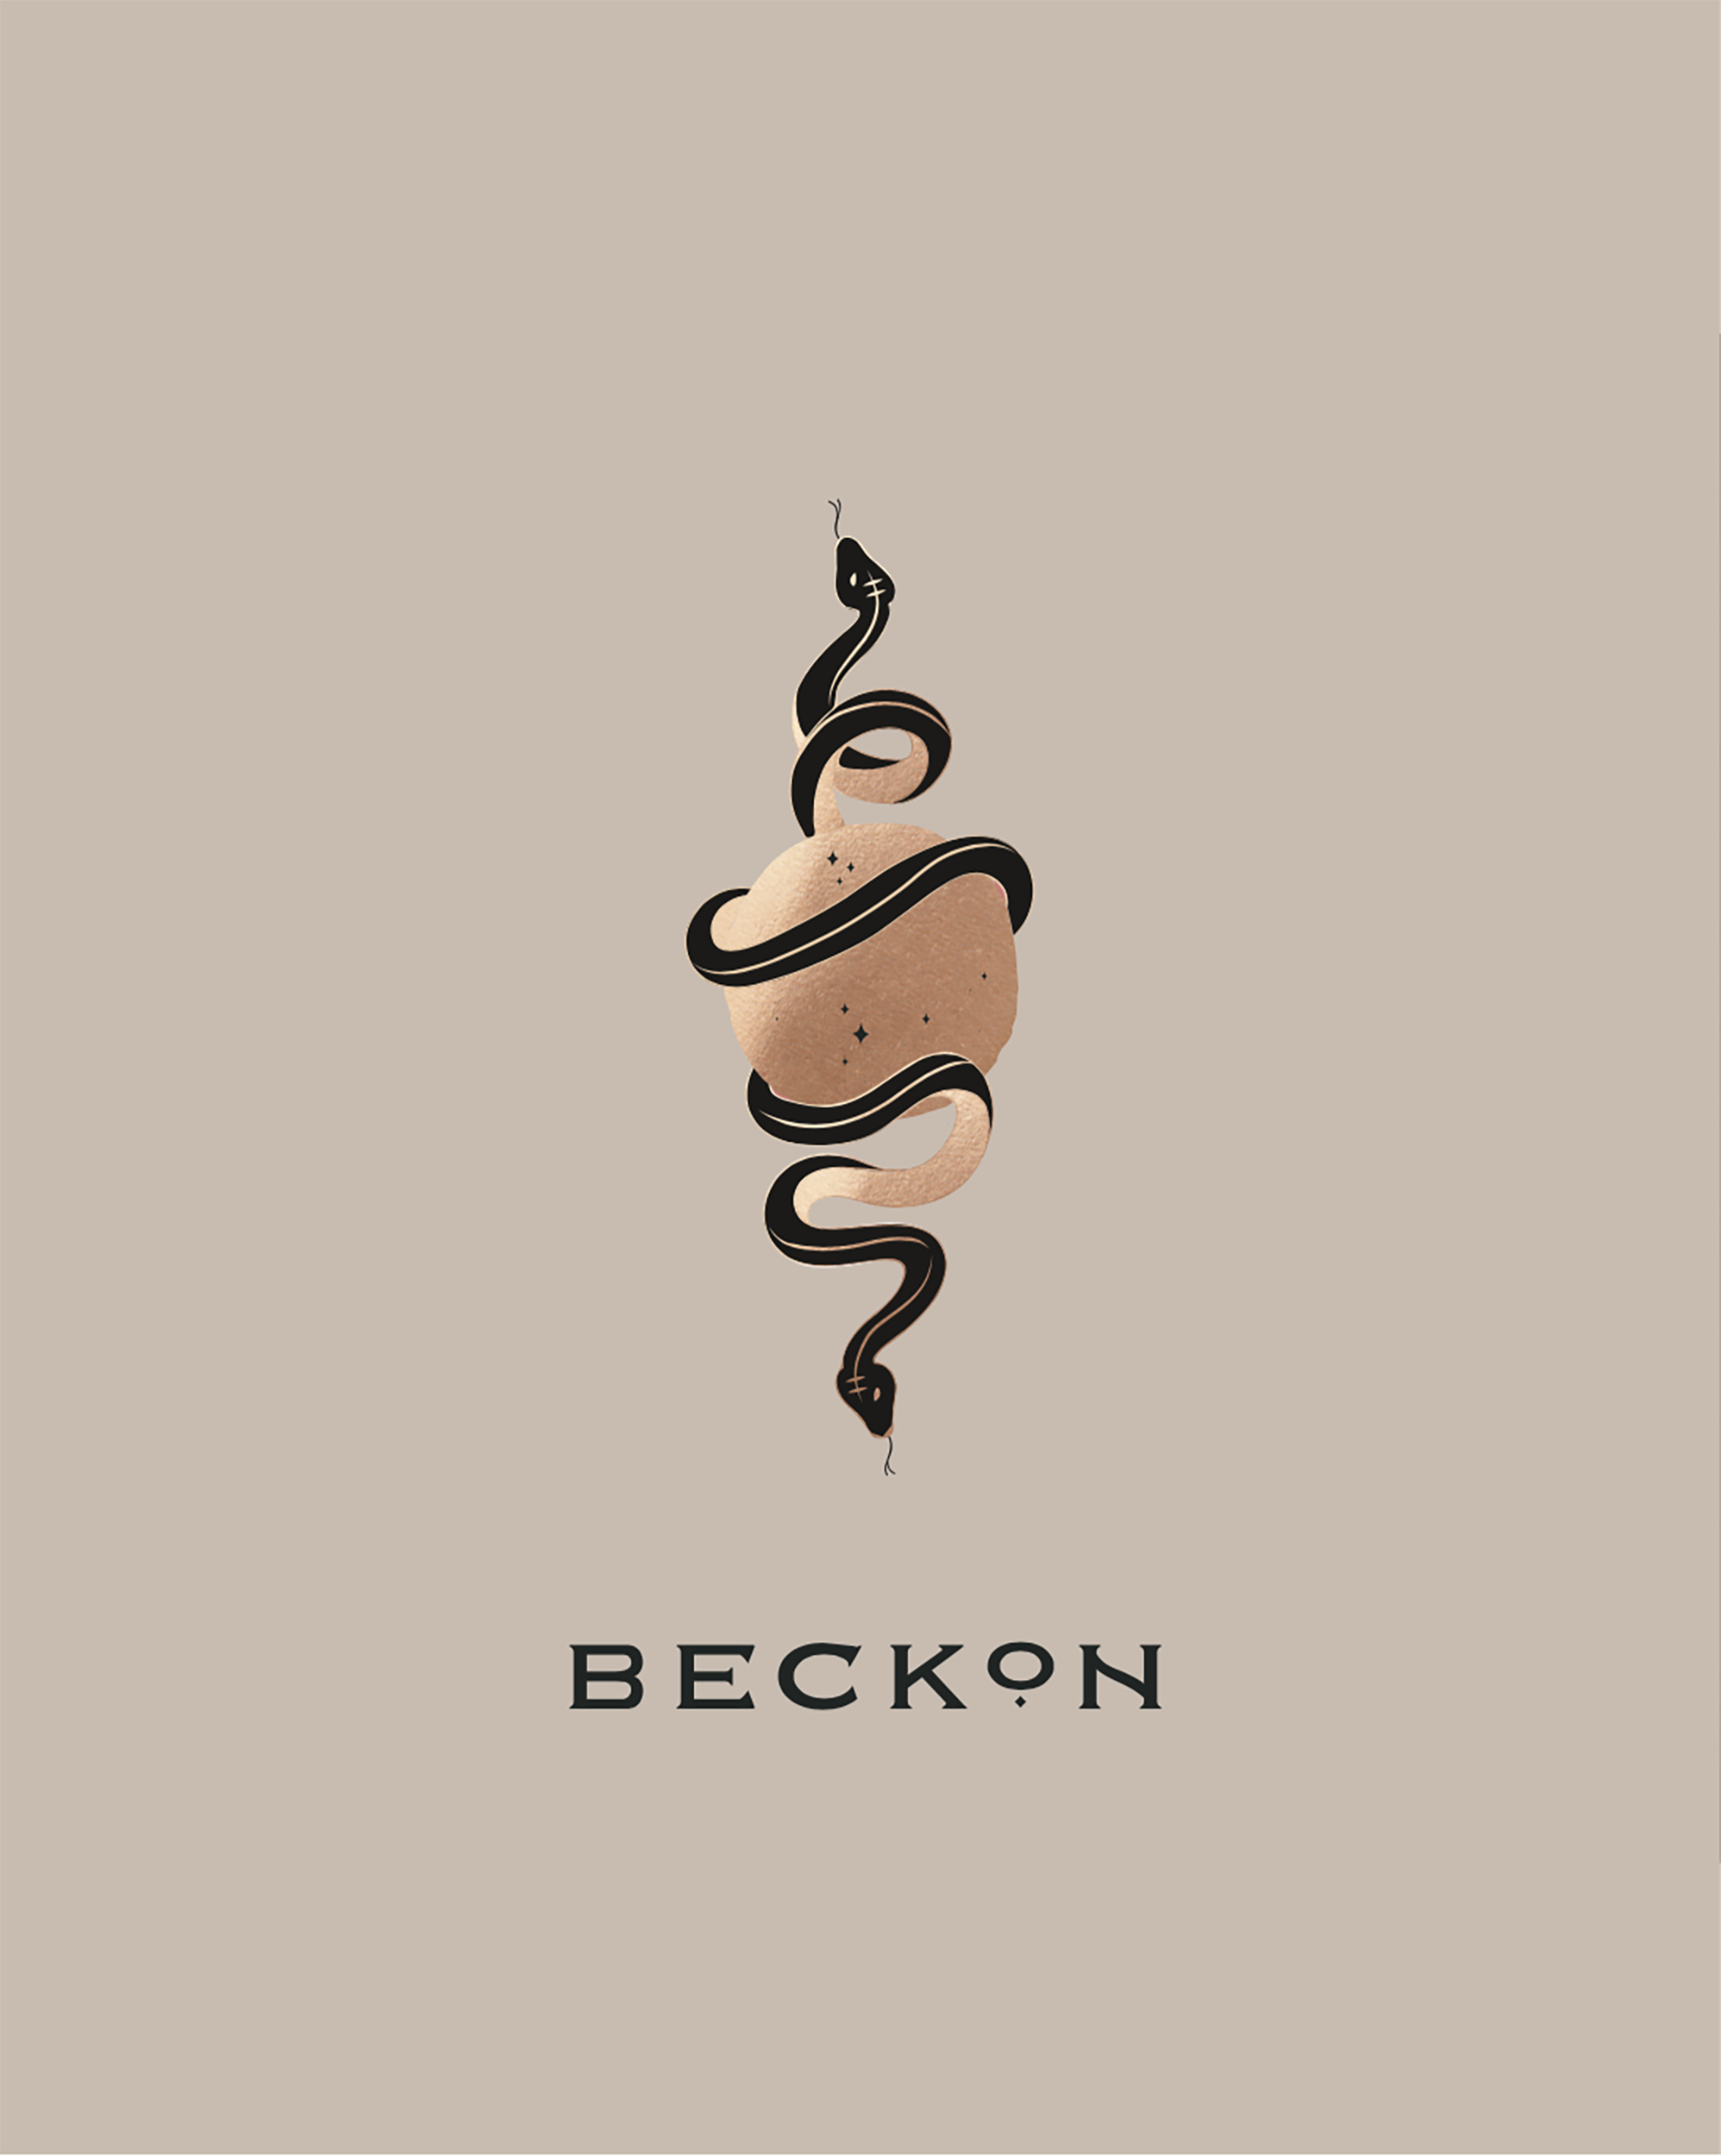 Brand illustration with word mark